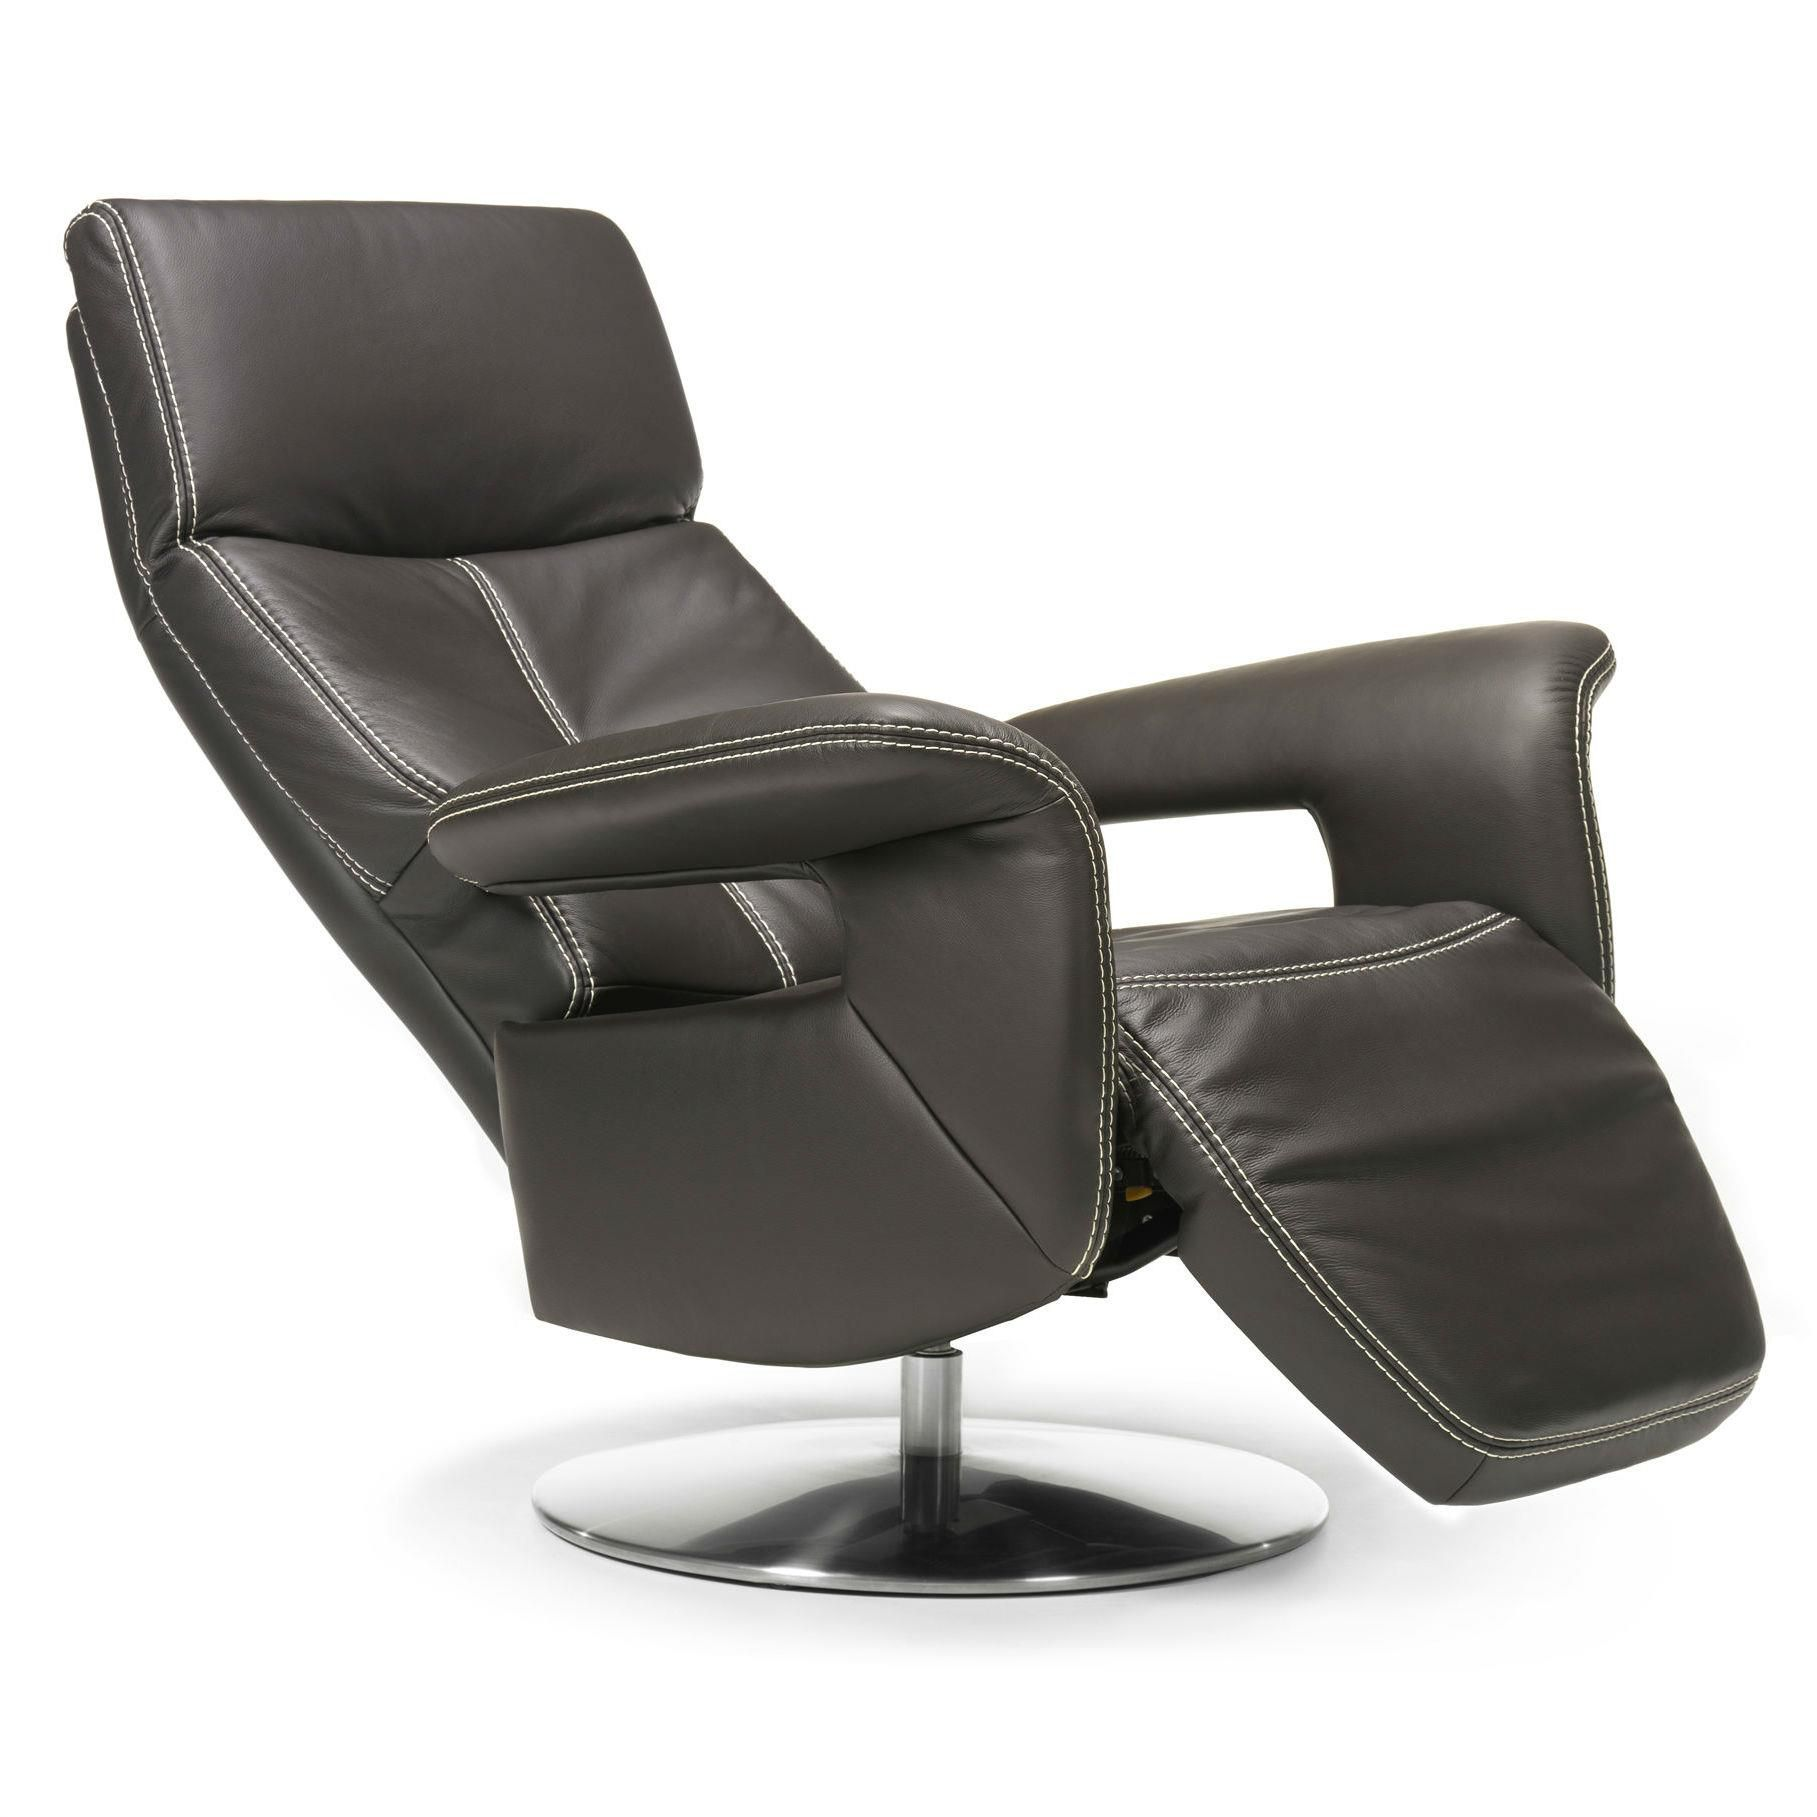 Choosing A Modern Recliner Chair   Http://atentevent.net/choosing A Modern  Recliner Chair/ : #Chairs Modern Recliner Chair U2013 For Many People, A Place  To Sit ...